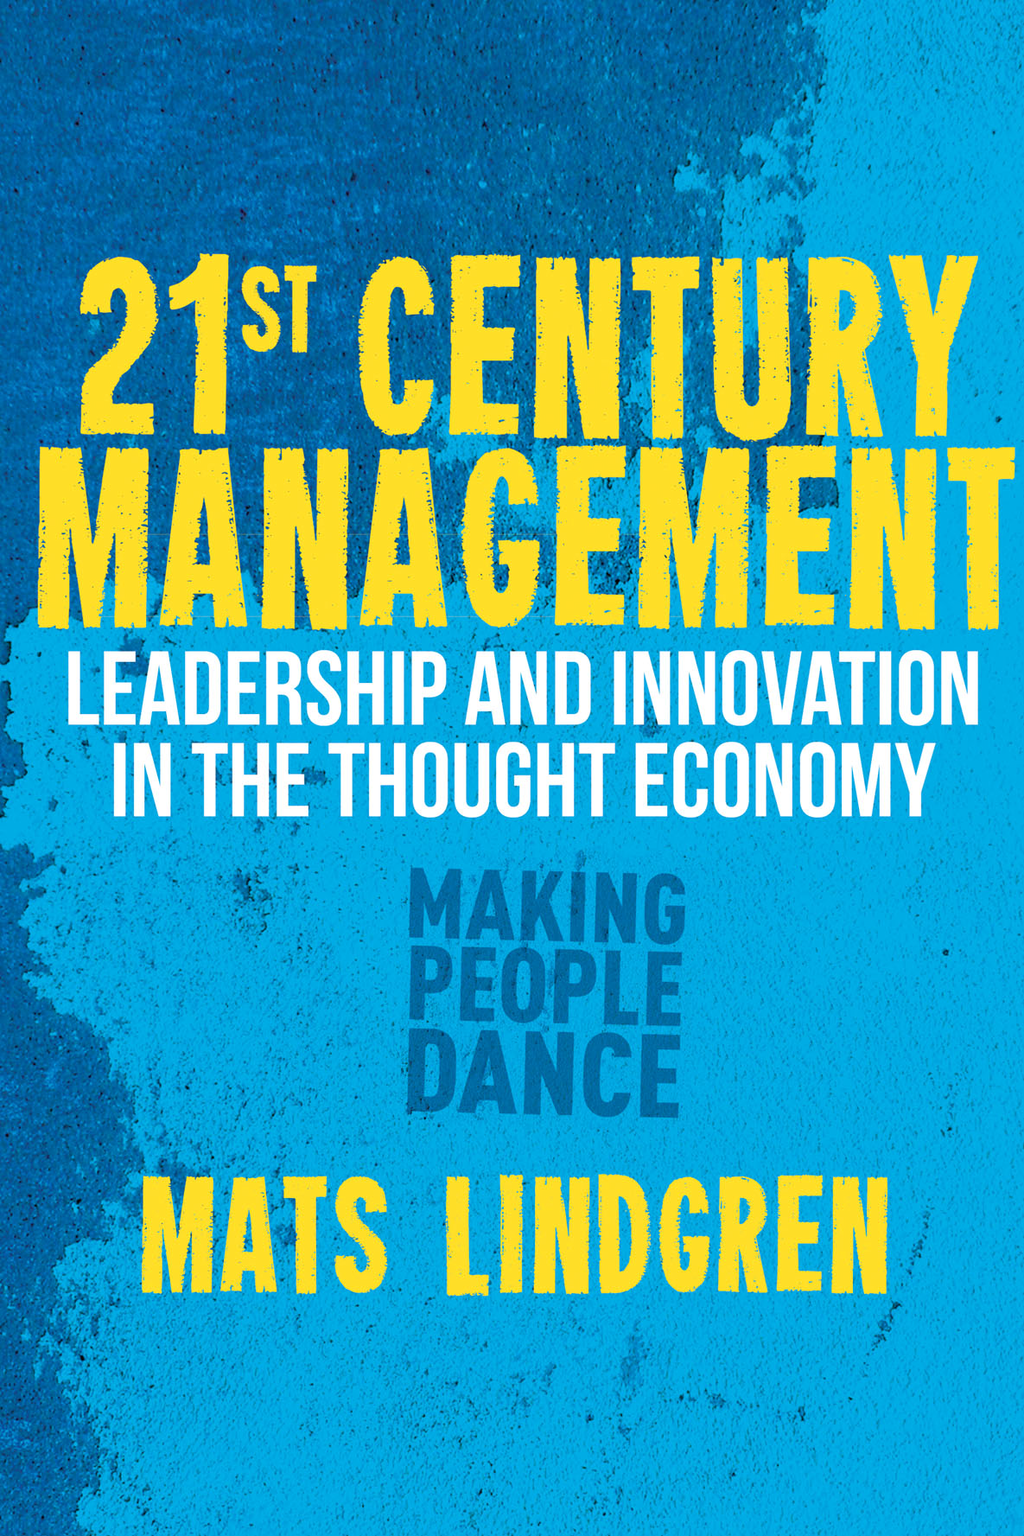 21st Century Management Leadership and Innovation in the Thought Economy